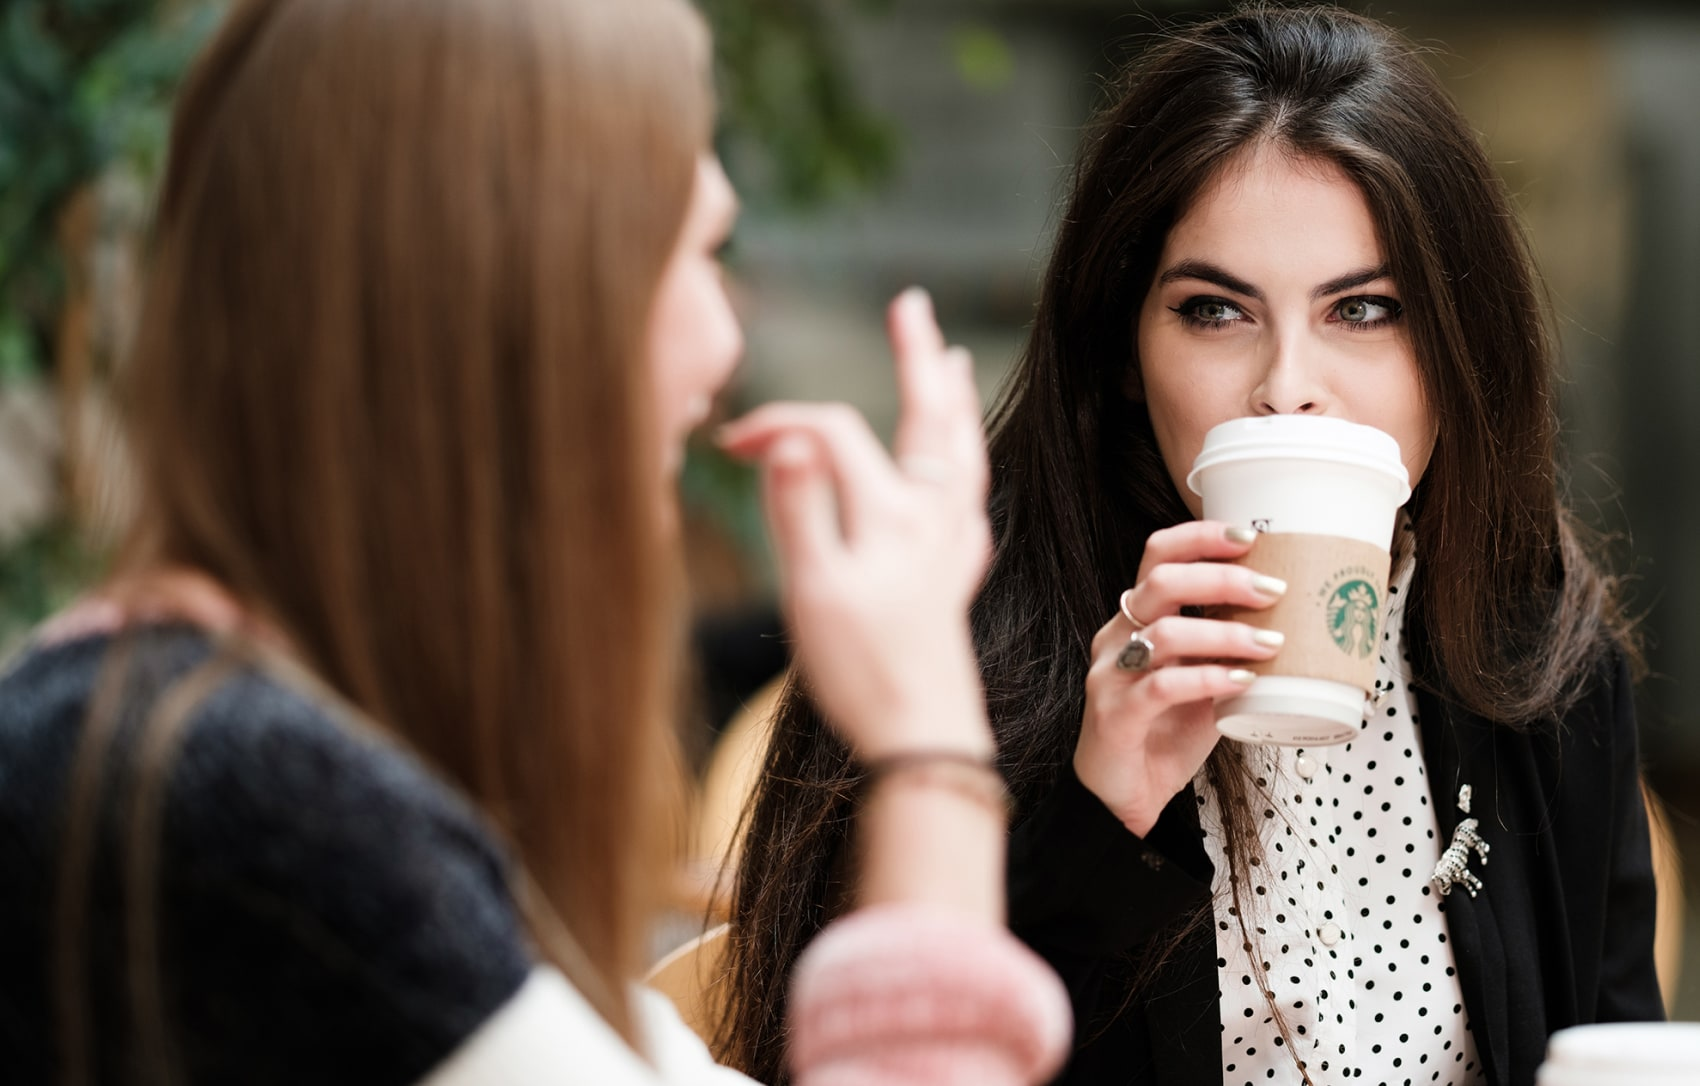 Student drinking from a Starbucks cup